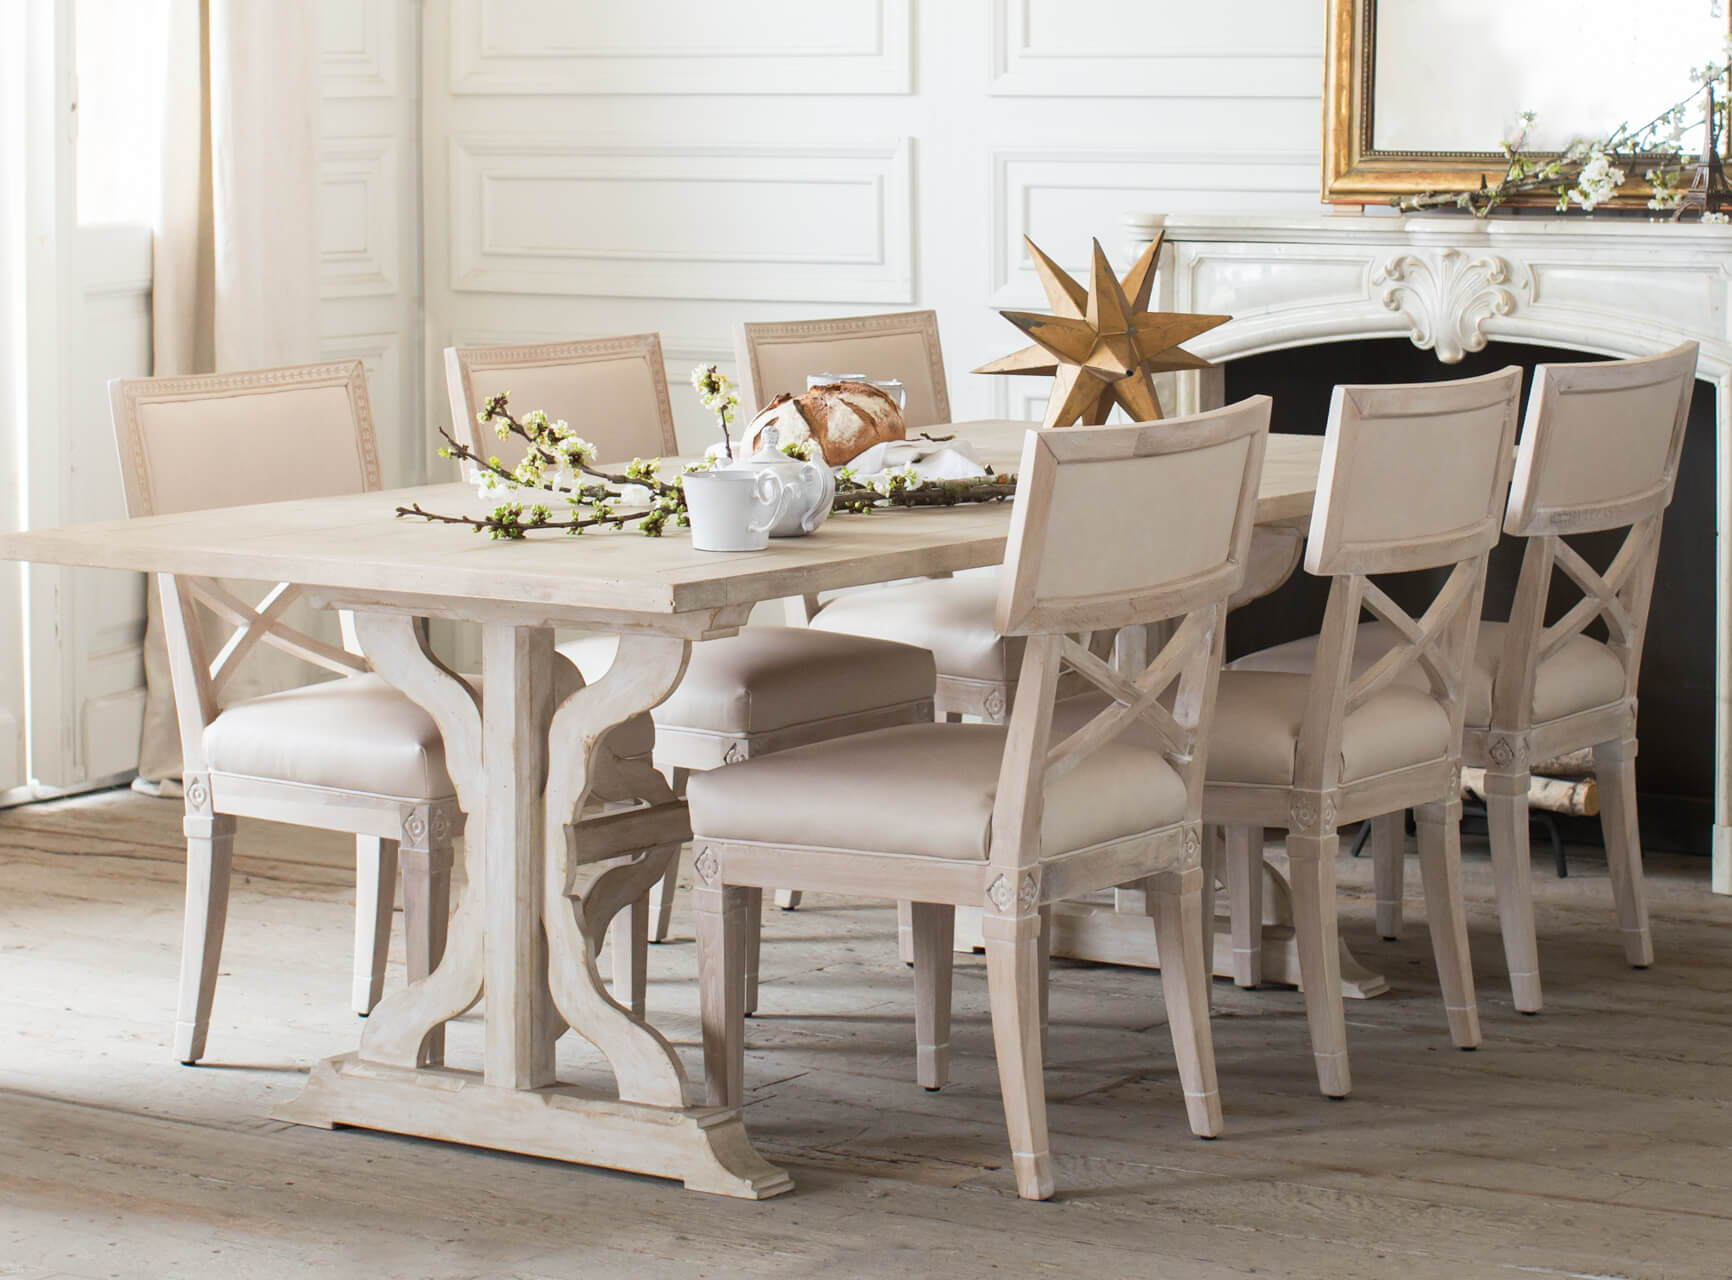 Eloquence® Thoreau Dining Table in Danish White Finish